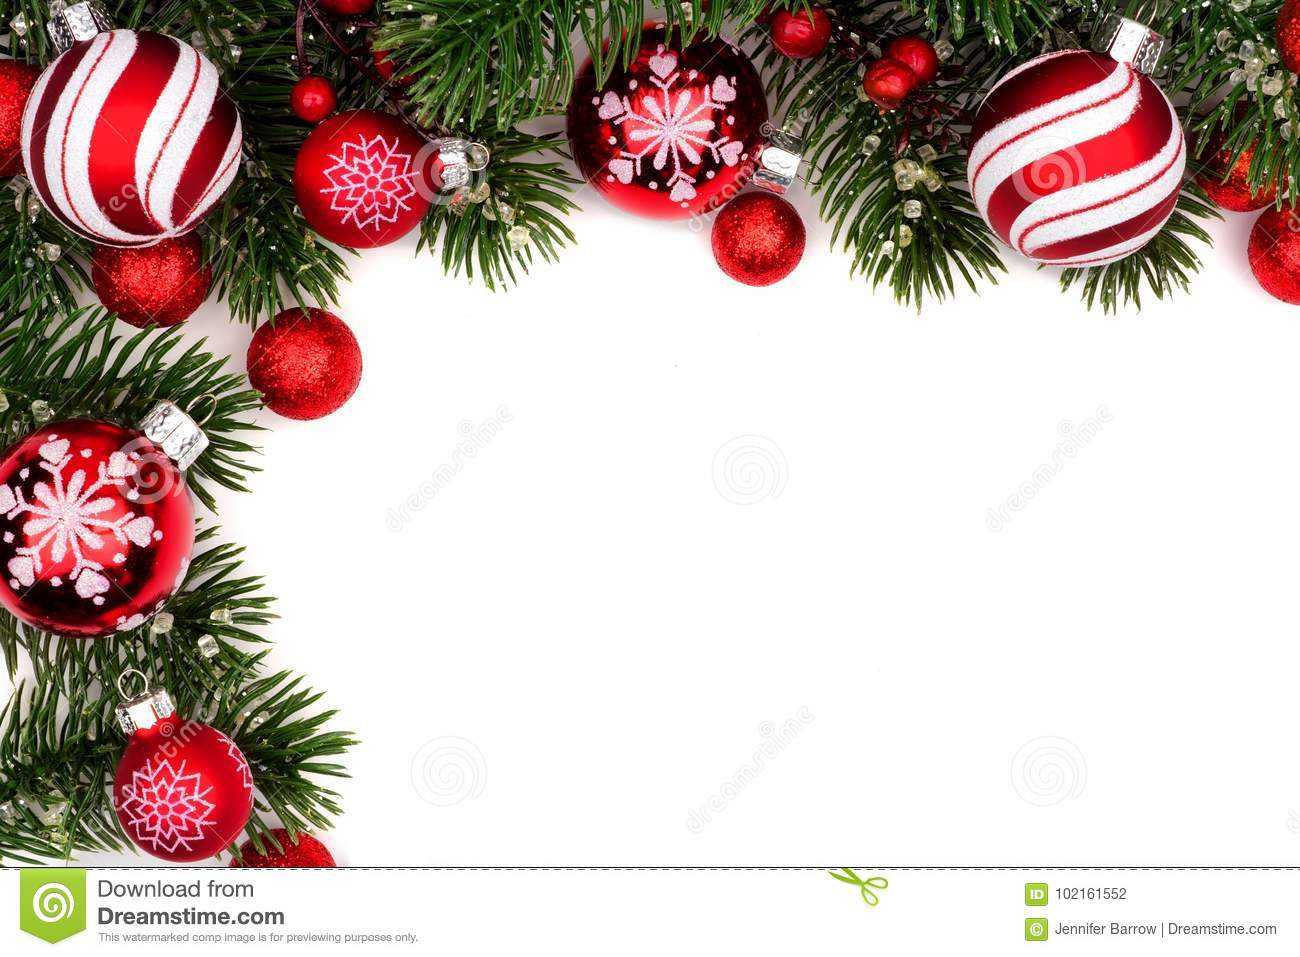 d8d9a8e58dc7 Christmas corner border of red and white baubles with branches isolated on  a white background